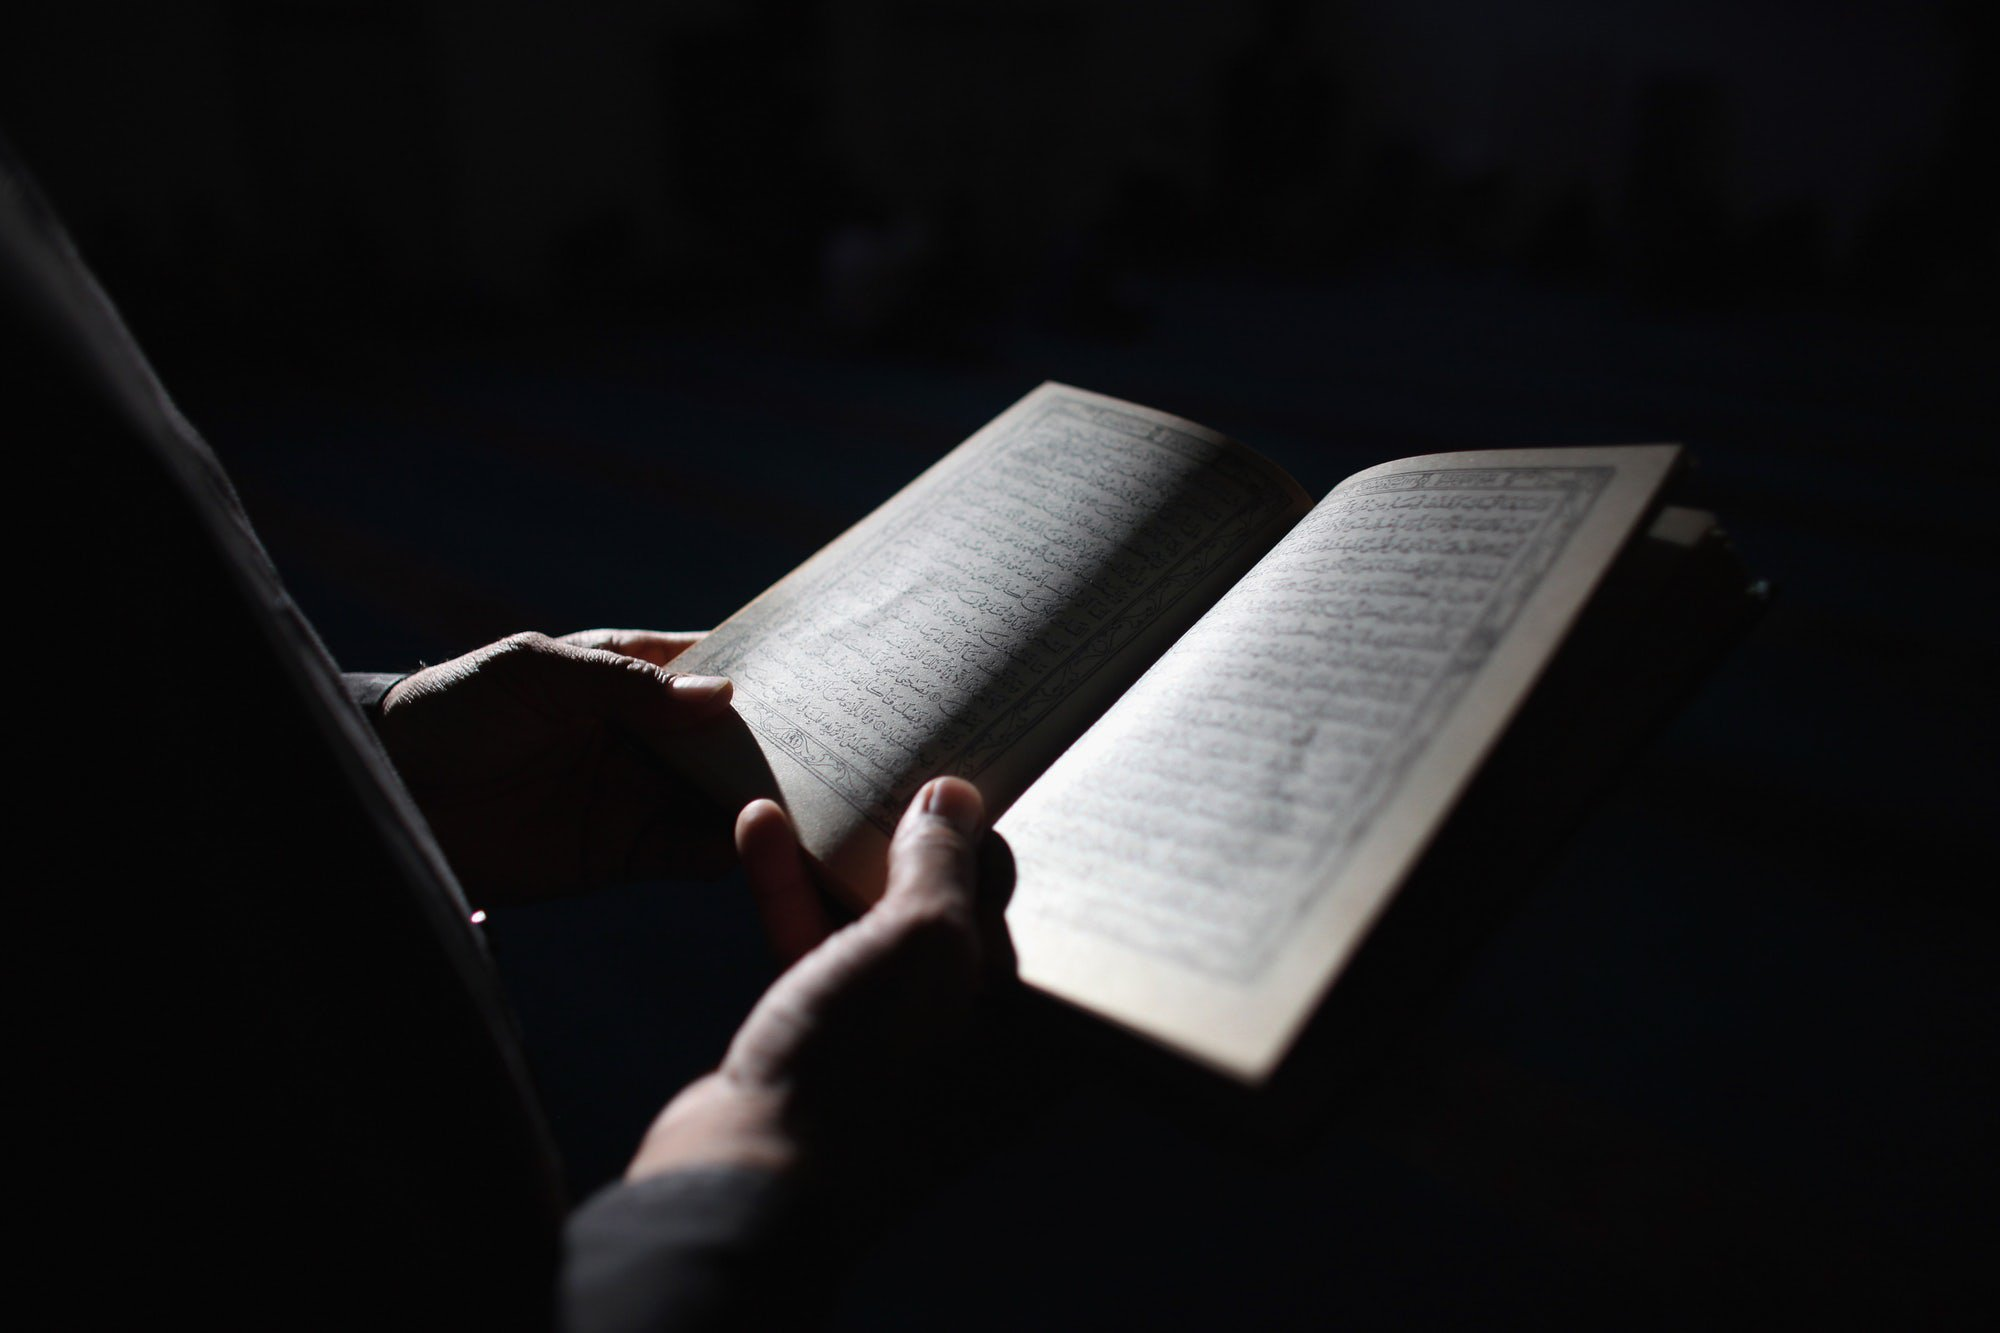 How Islam Shaped the Enlightenment